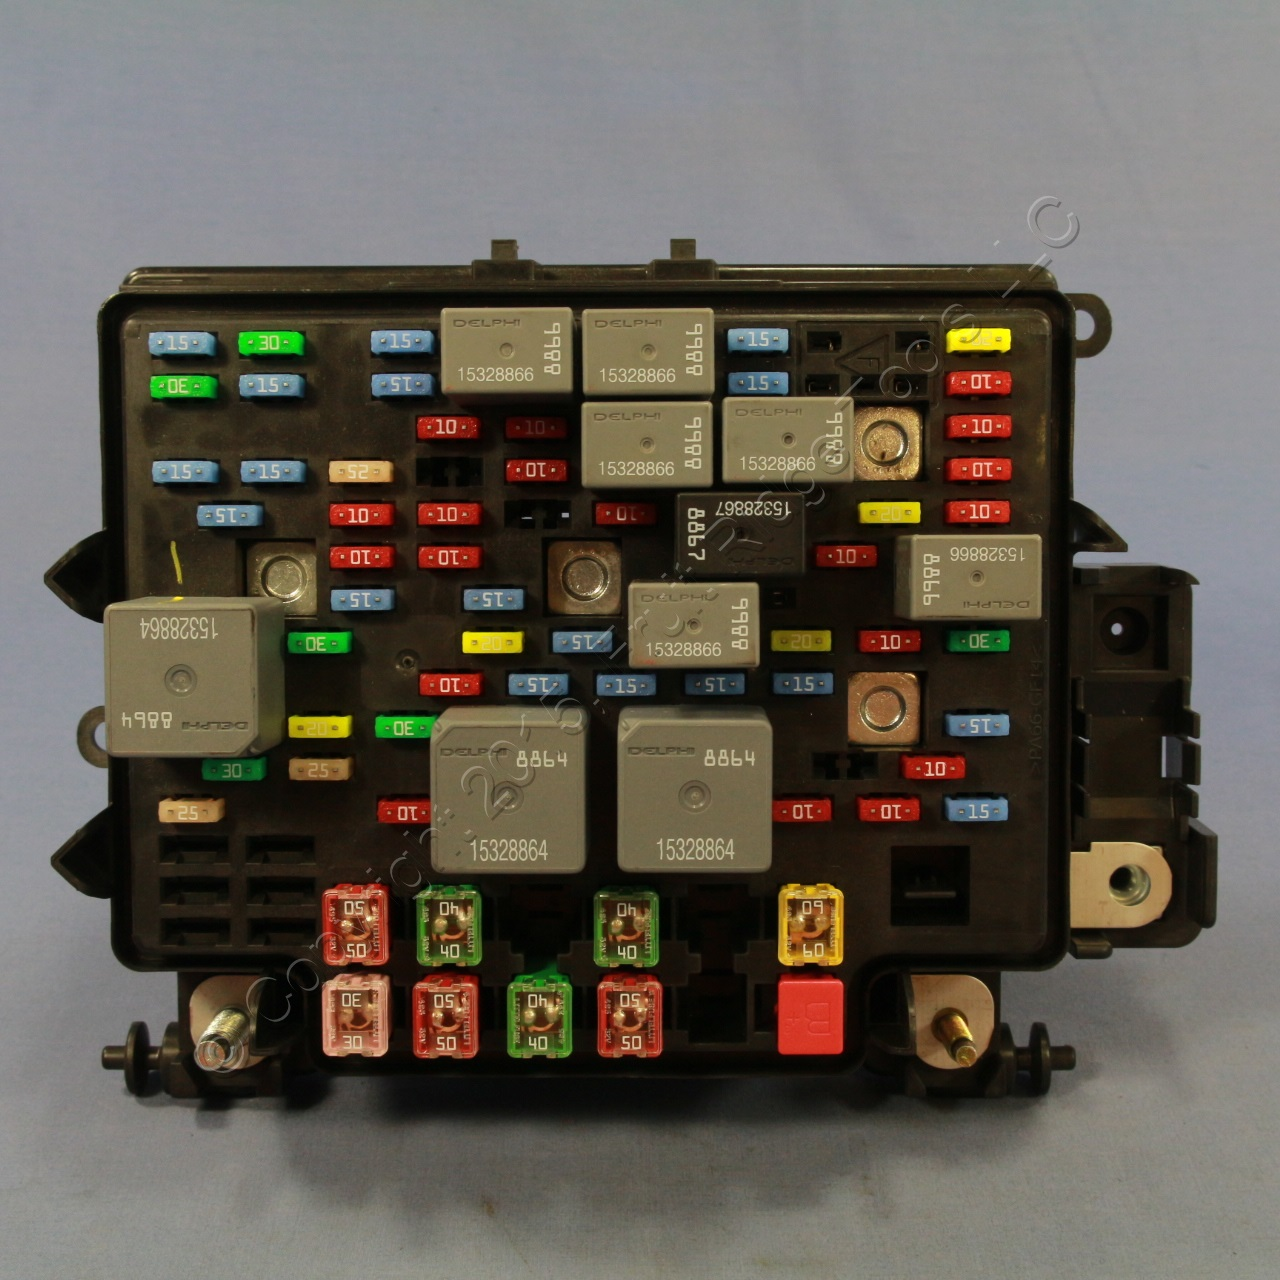 Oem C6 Fuse Box Cover Expert Wiring Diagram Images Gallery